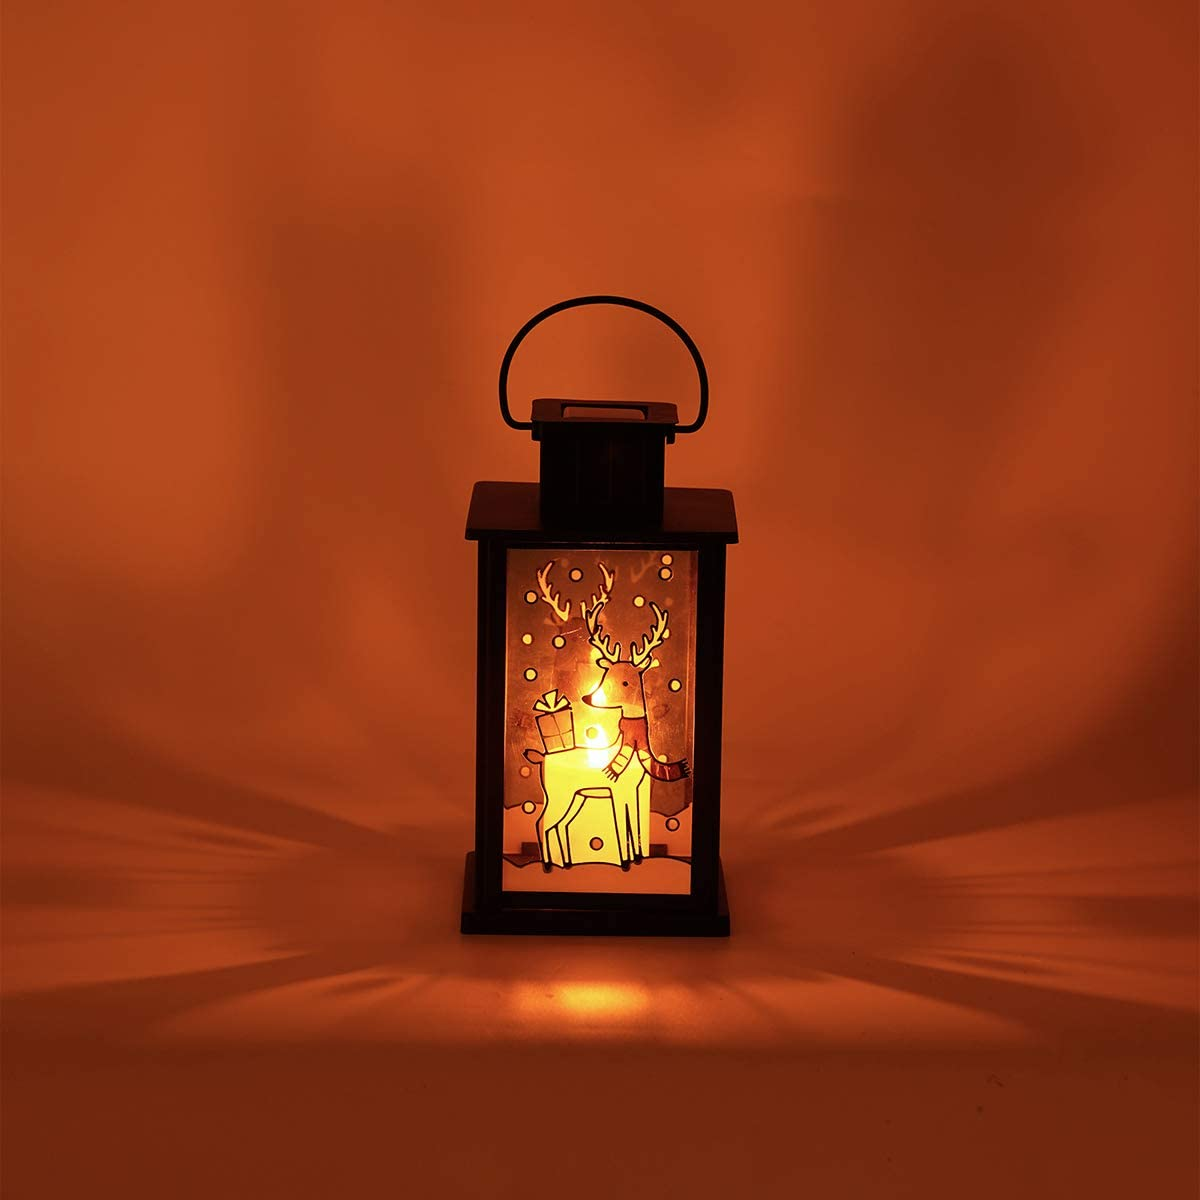 Solar Lantern,Outdoor Garden Hanging Lanterns,Waterproof LED Flickering Flameless Candle Mission Lights for Table,Outdoor,Party Decorative